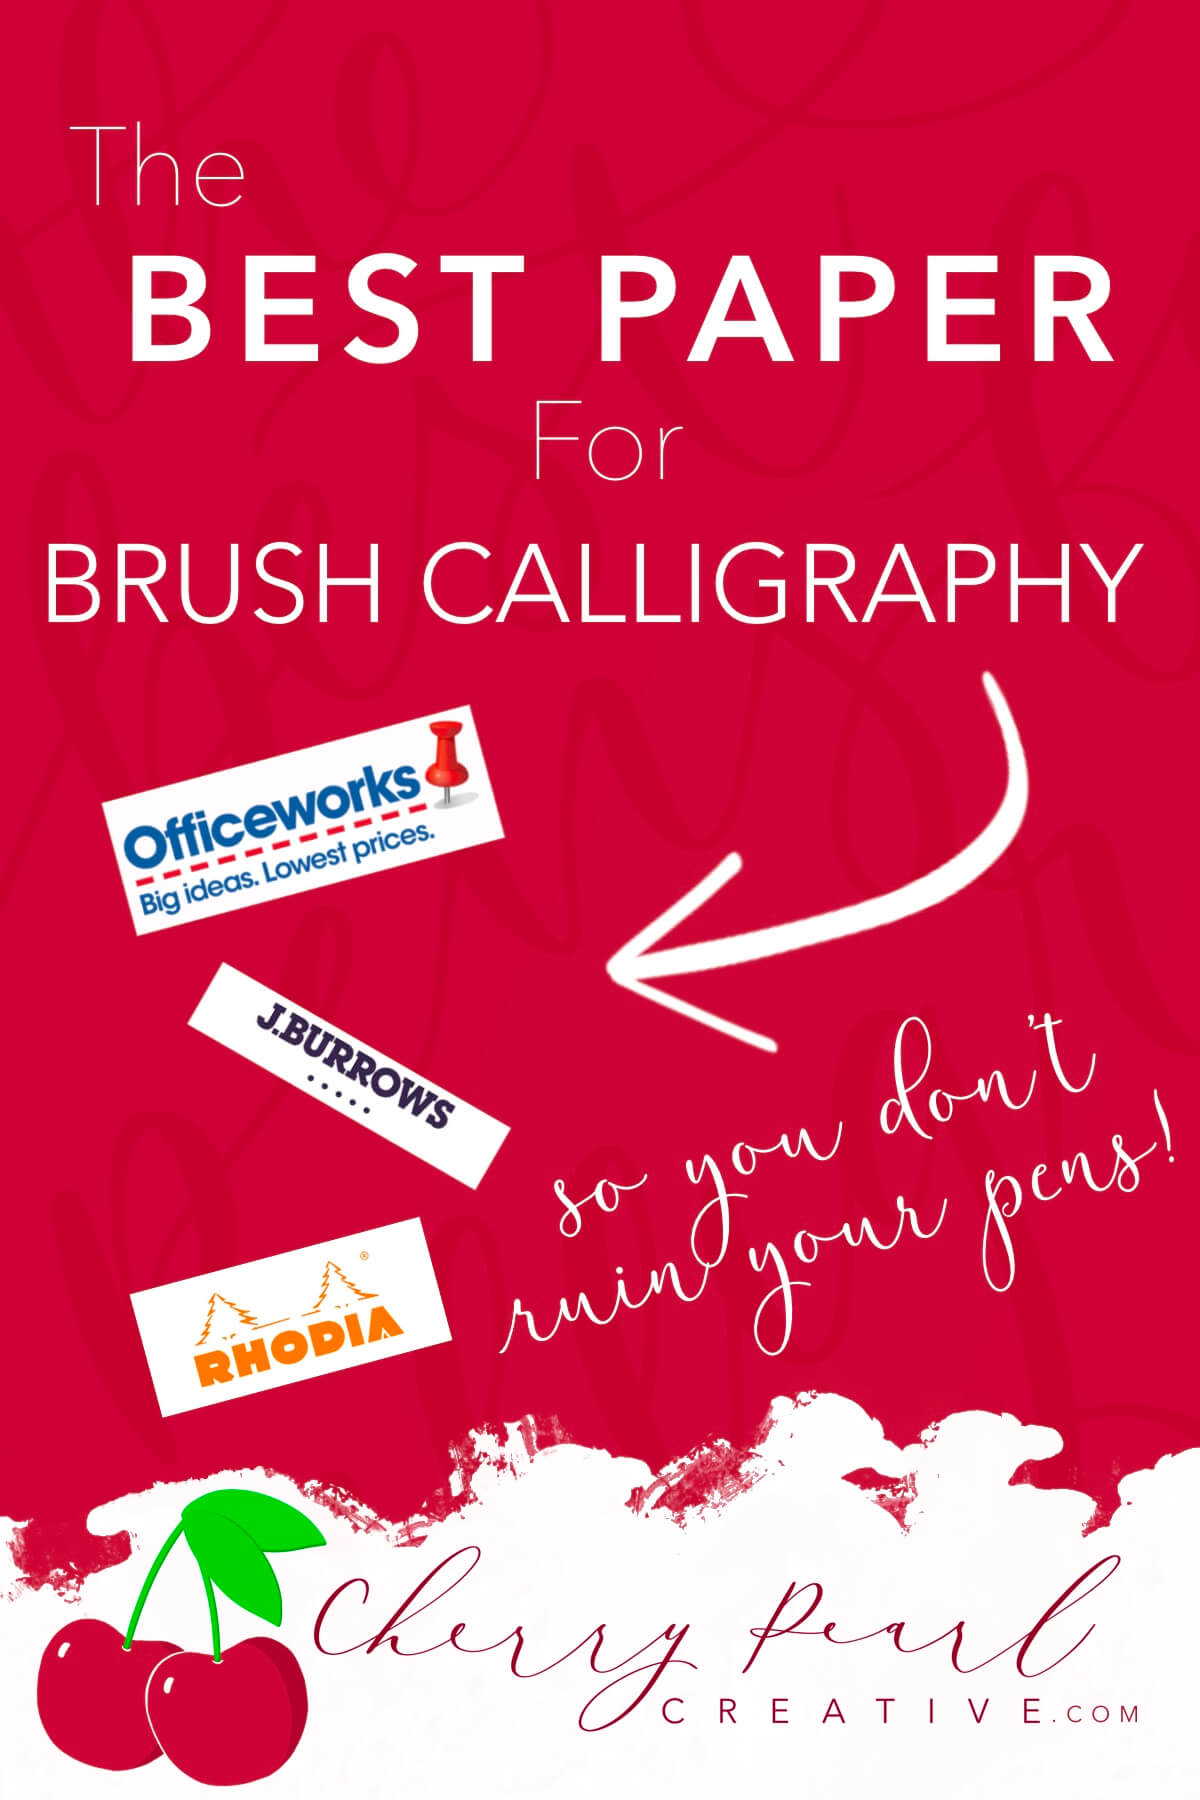 Cherry Pearl Creative - Best Paper for Brush Calligraphy - learn online for free.